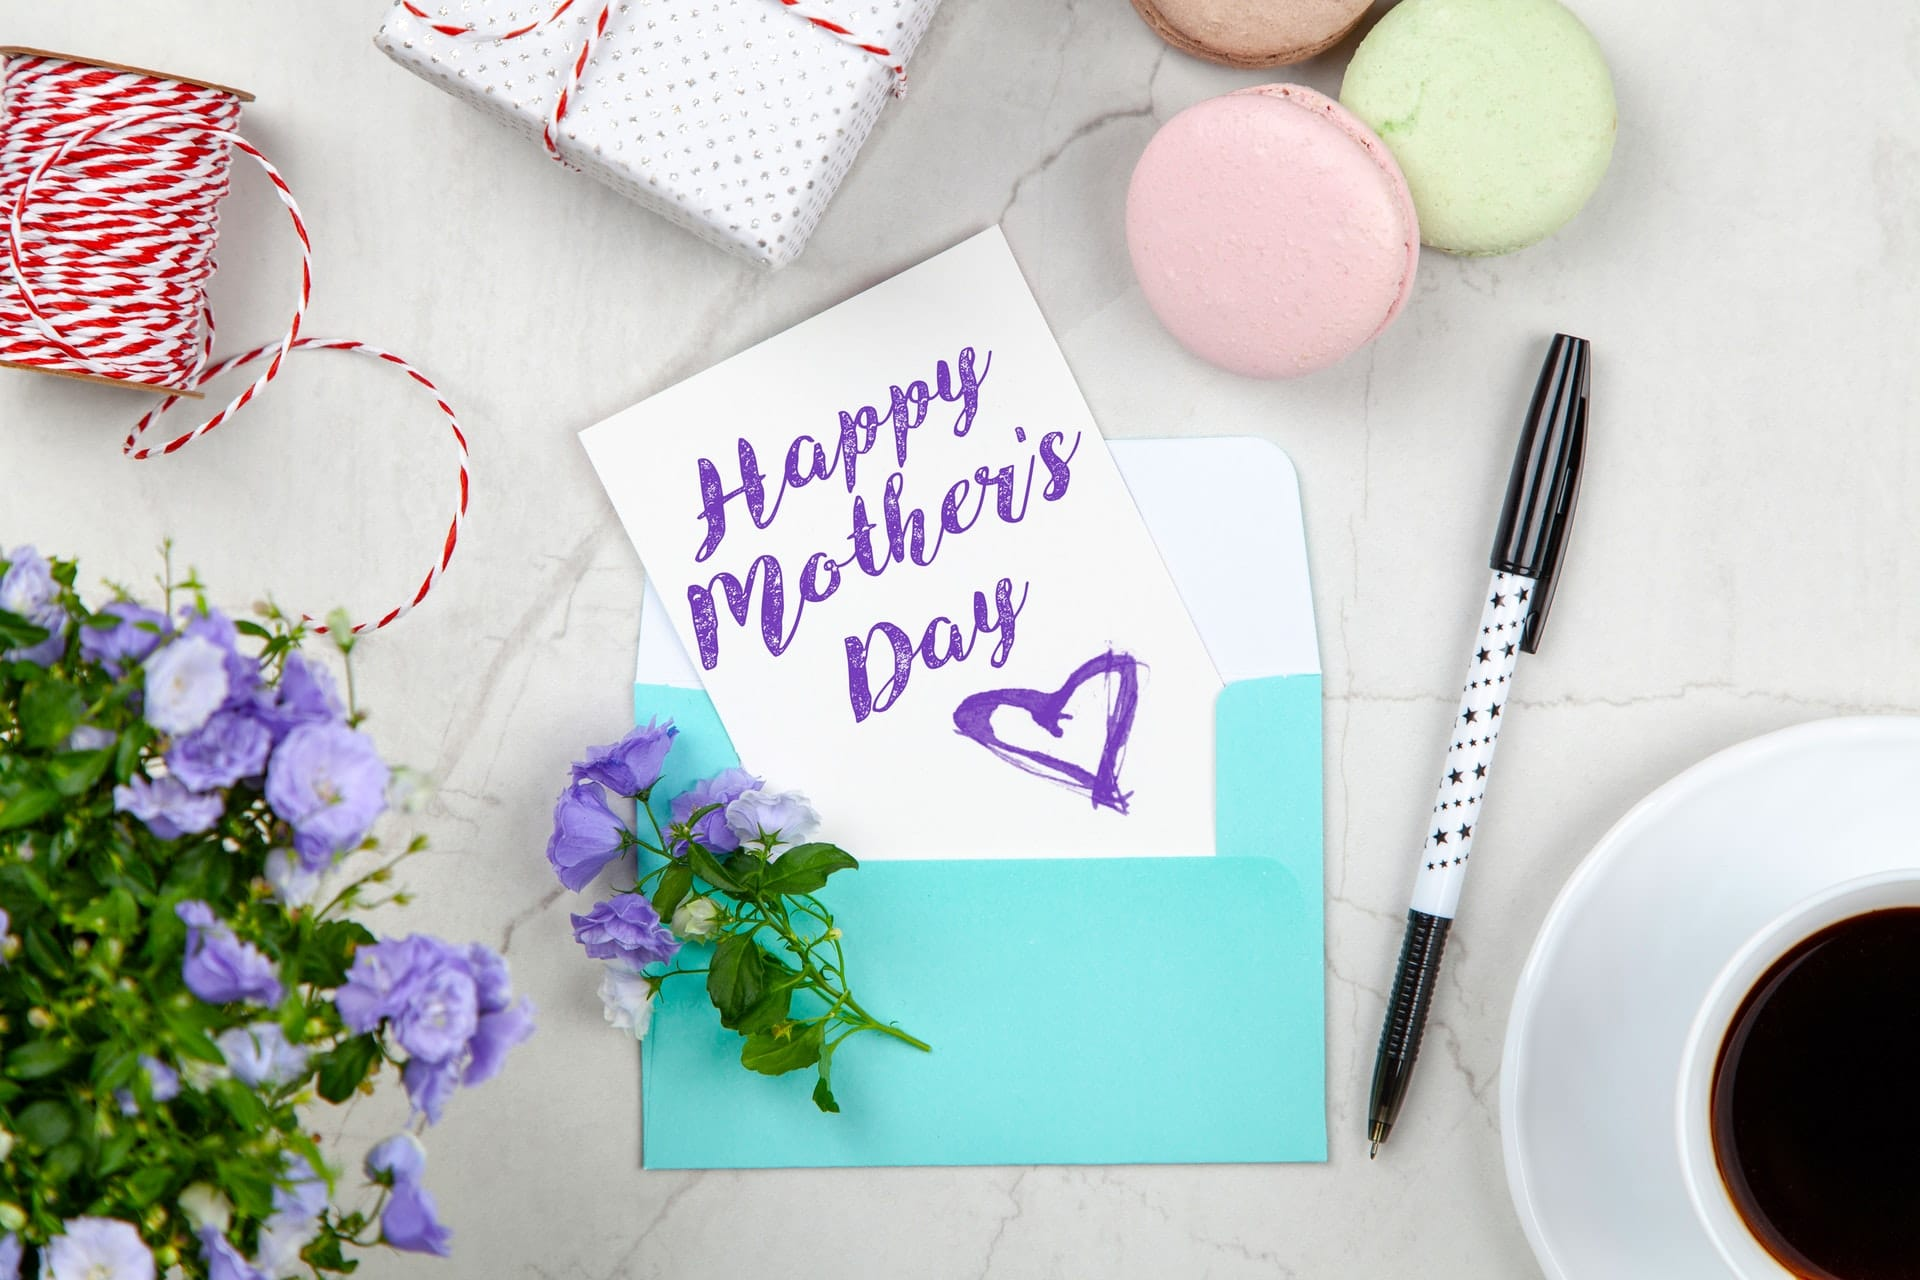 10 Special Mother's Day Menus for any Lifestyle via @mermaidsandmojitos